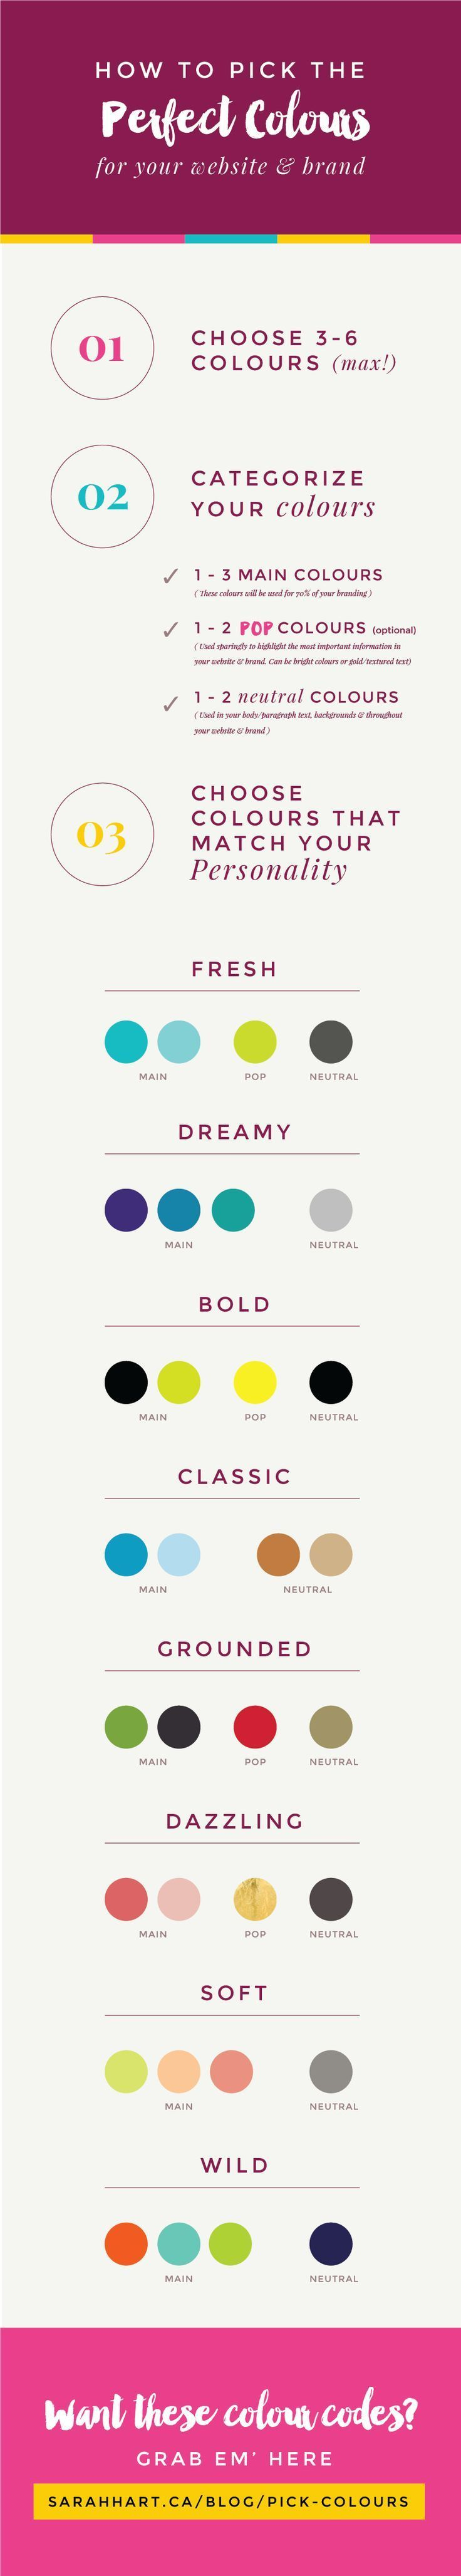 Colors for professional website - How To Pick The Perfect Colours For Your Website Amp Brand Infographic